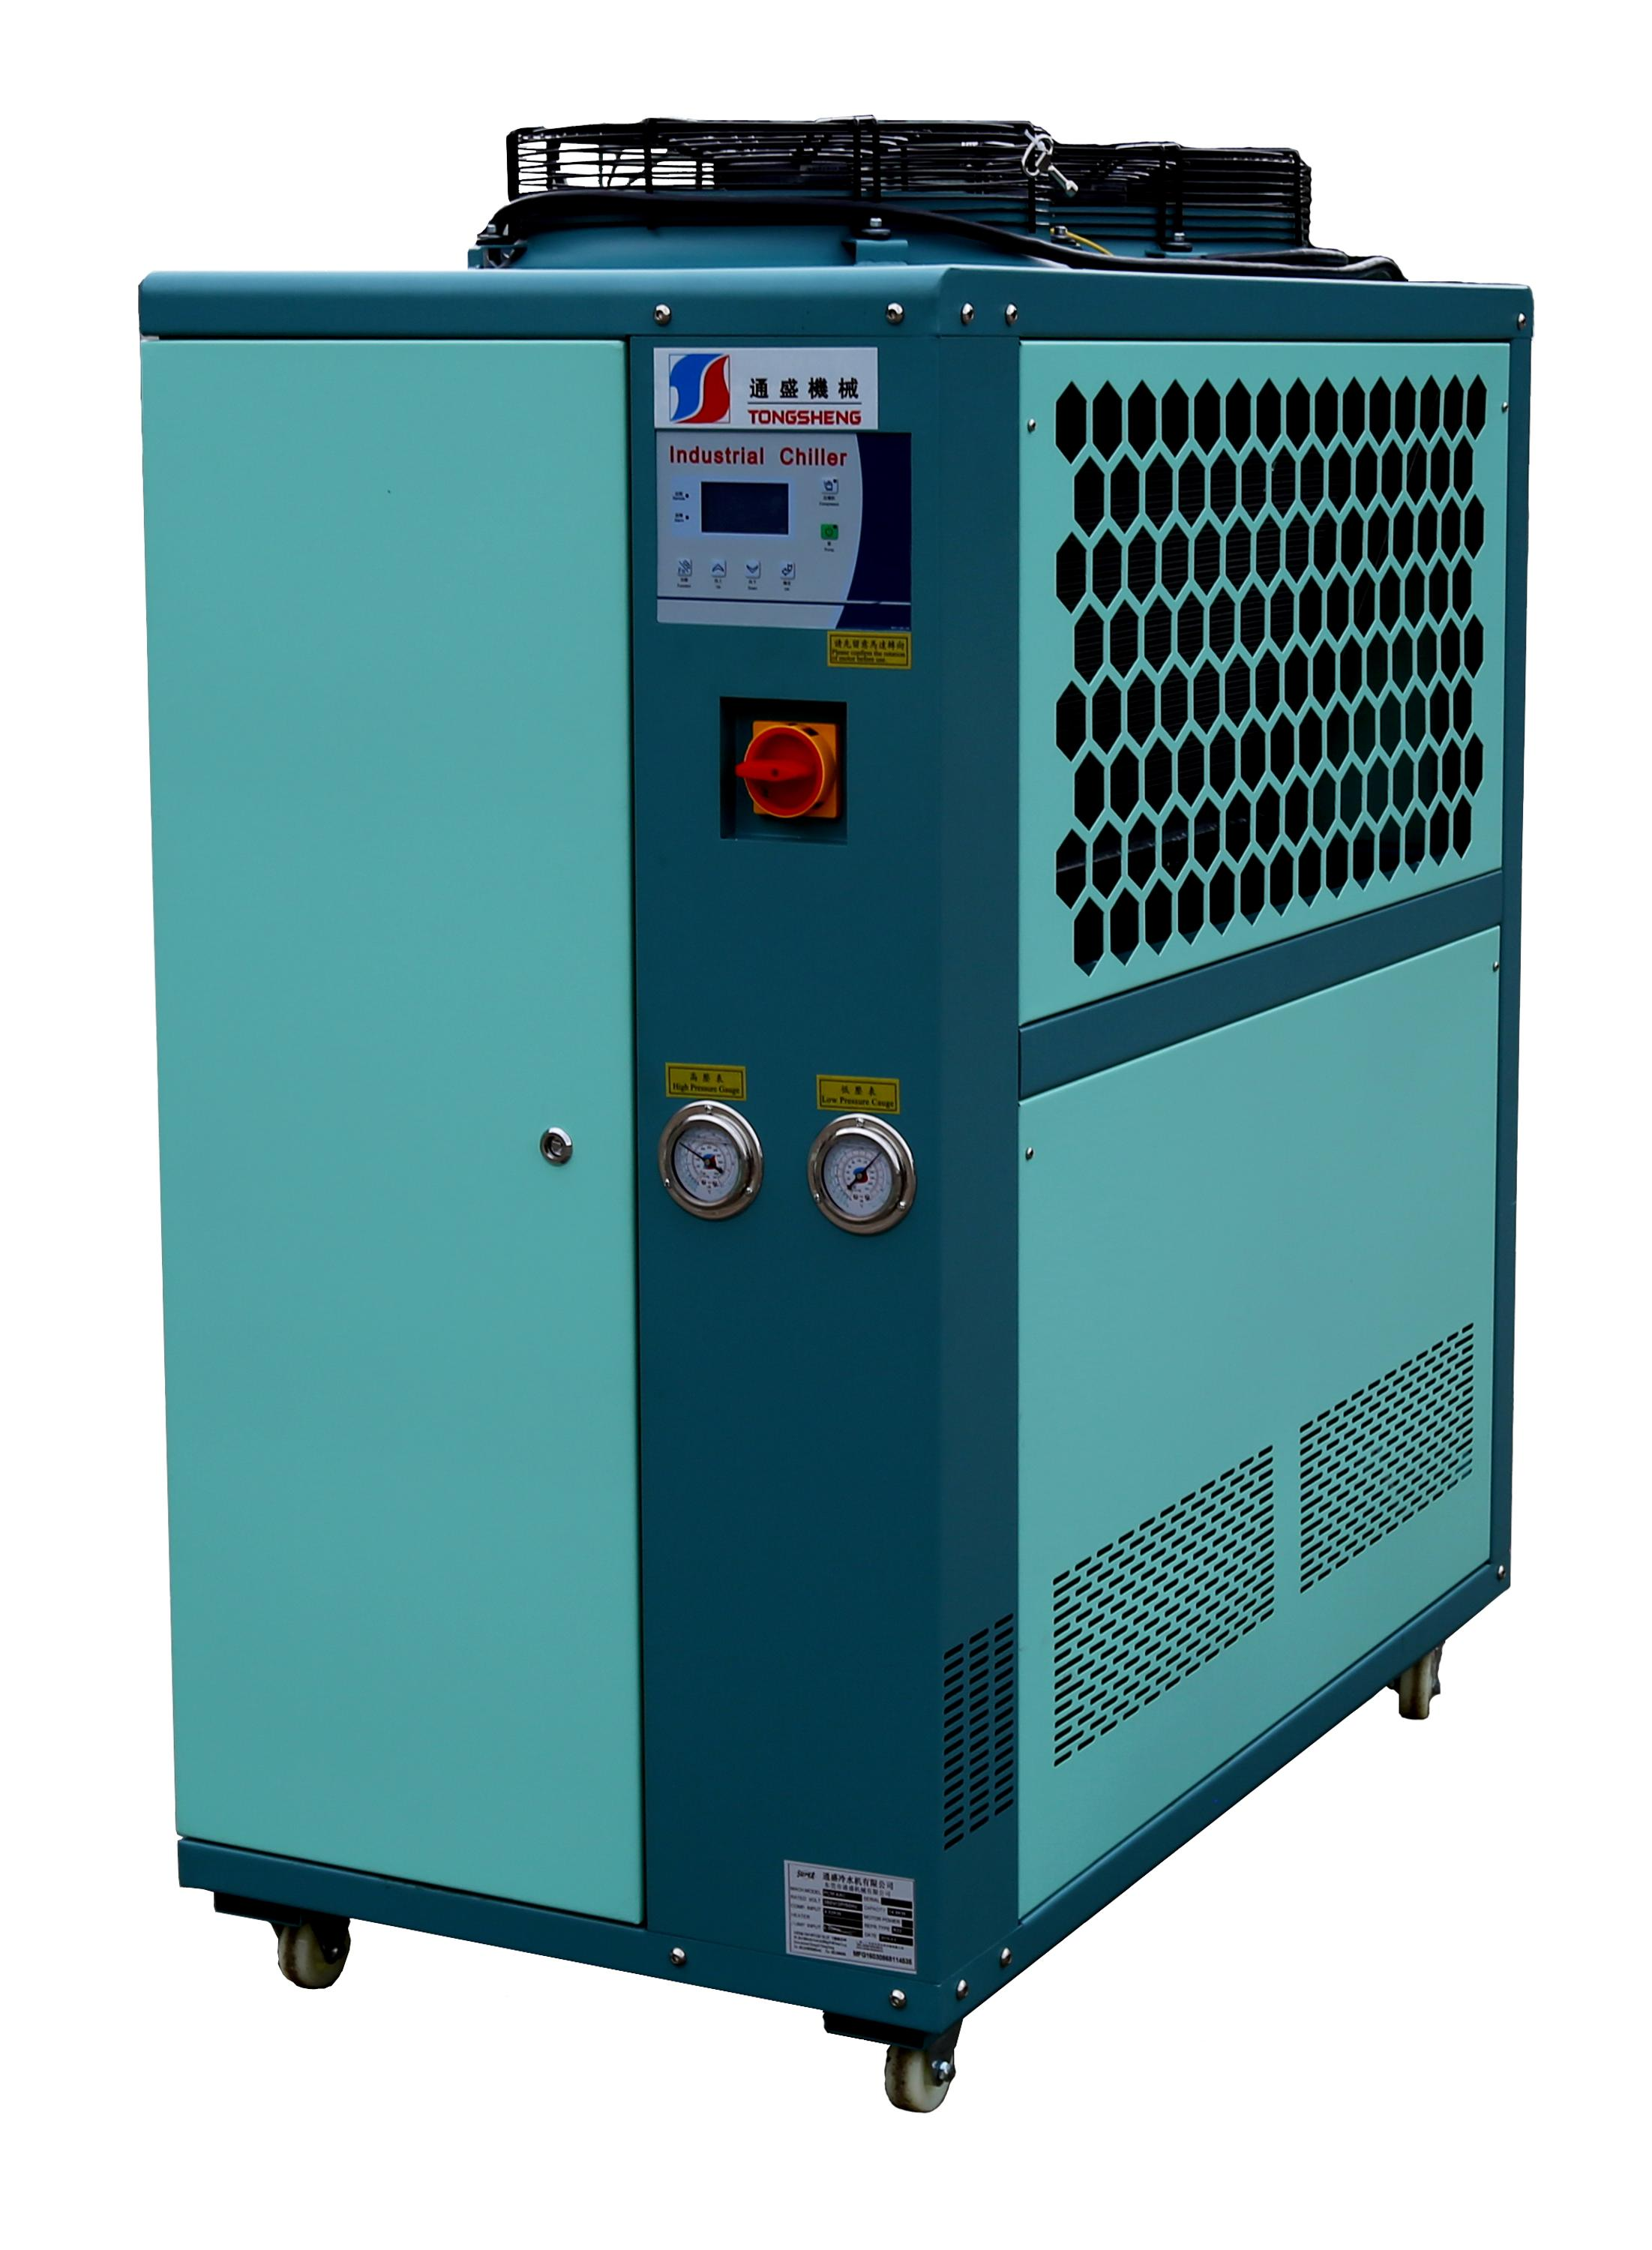 Heating And Cooling Unit Brands : Heating and cooling system chiller brand names for the